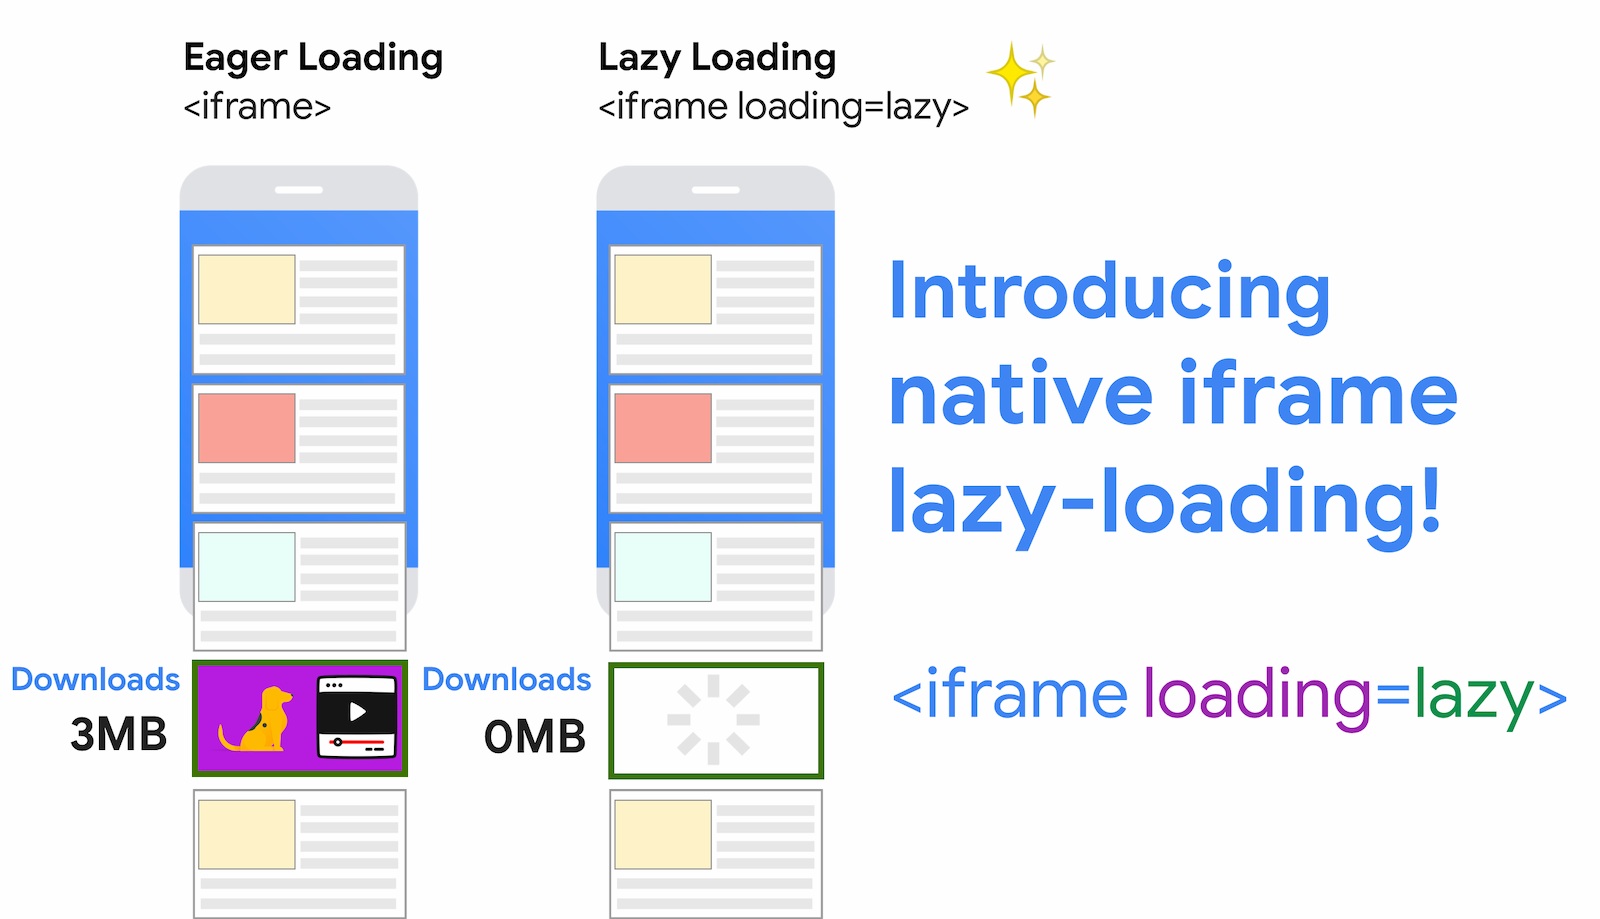 Data-savings from using iframe lazy-loading for an iframe. Eager loading pulls in 3MB in this example, while lazy-loading does not pull in this code until the user scrolls closer to the iframe.